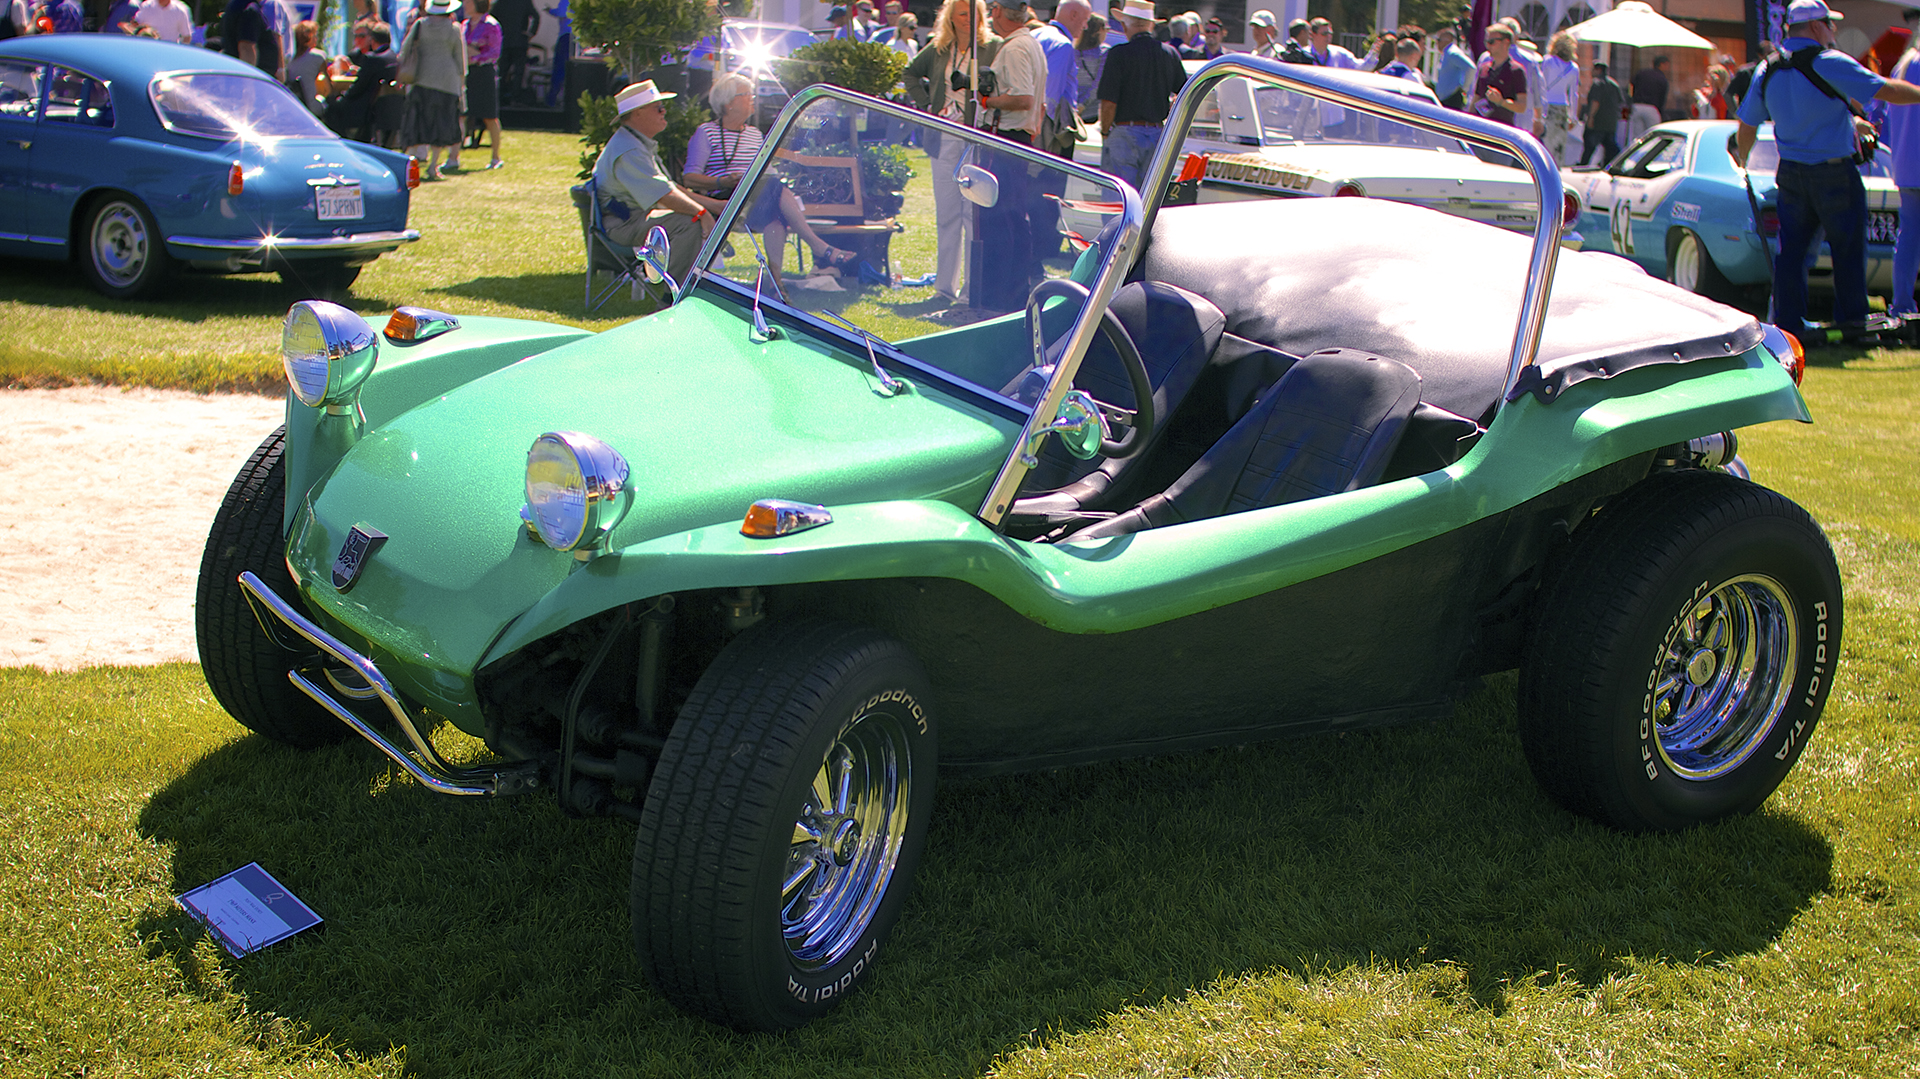 Video: Bruce Meyers: Meet the beach boy who invented the dune buggy